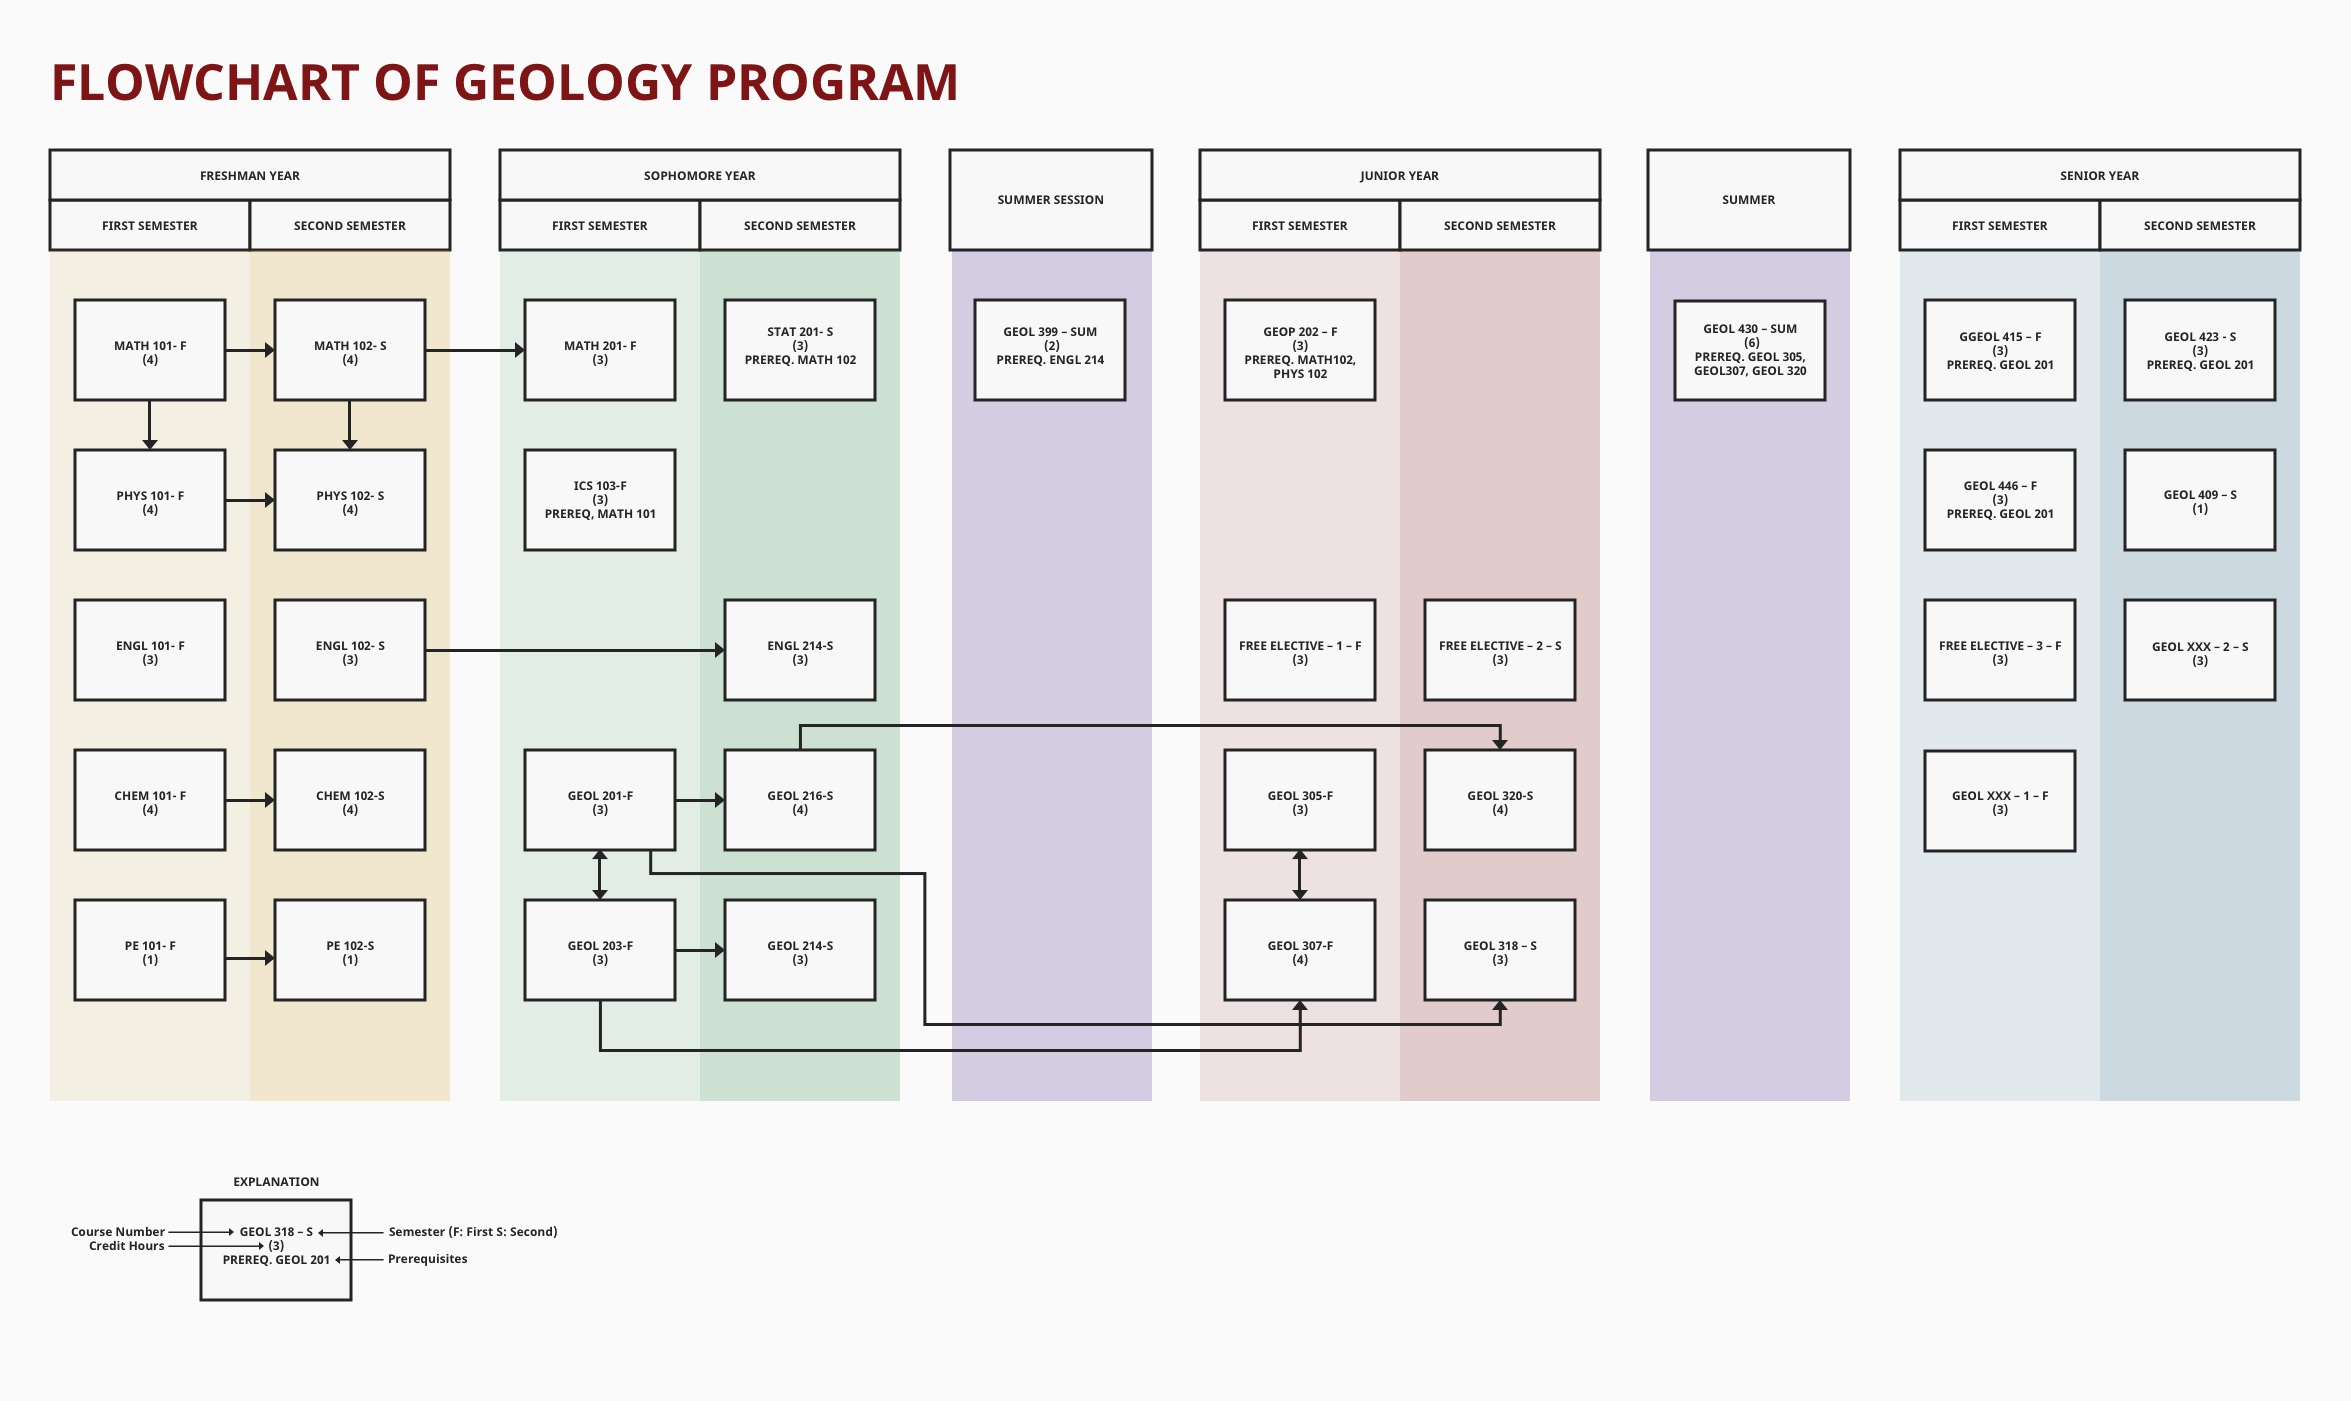 geology-program-flowchart